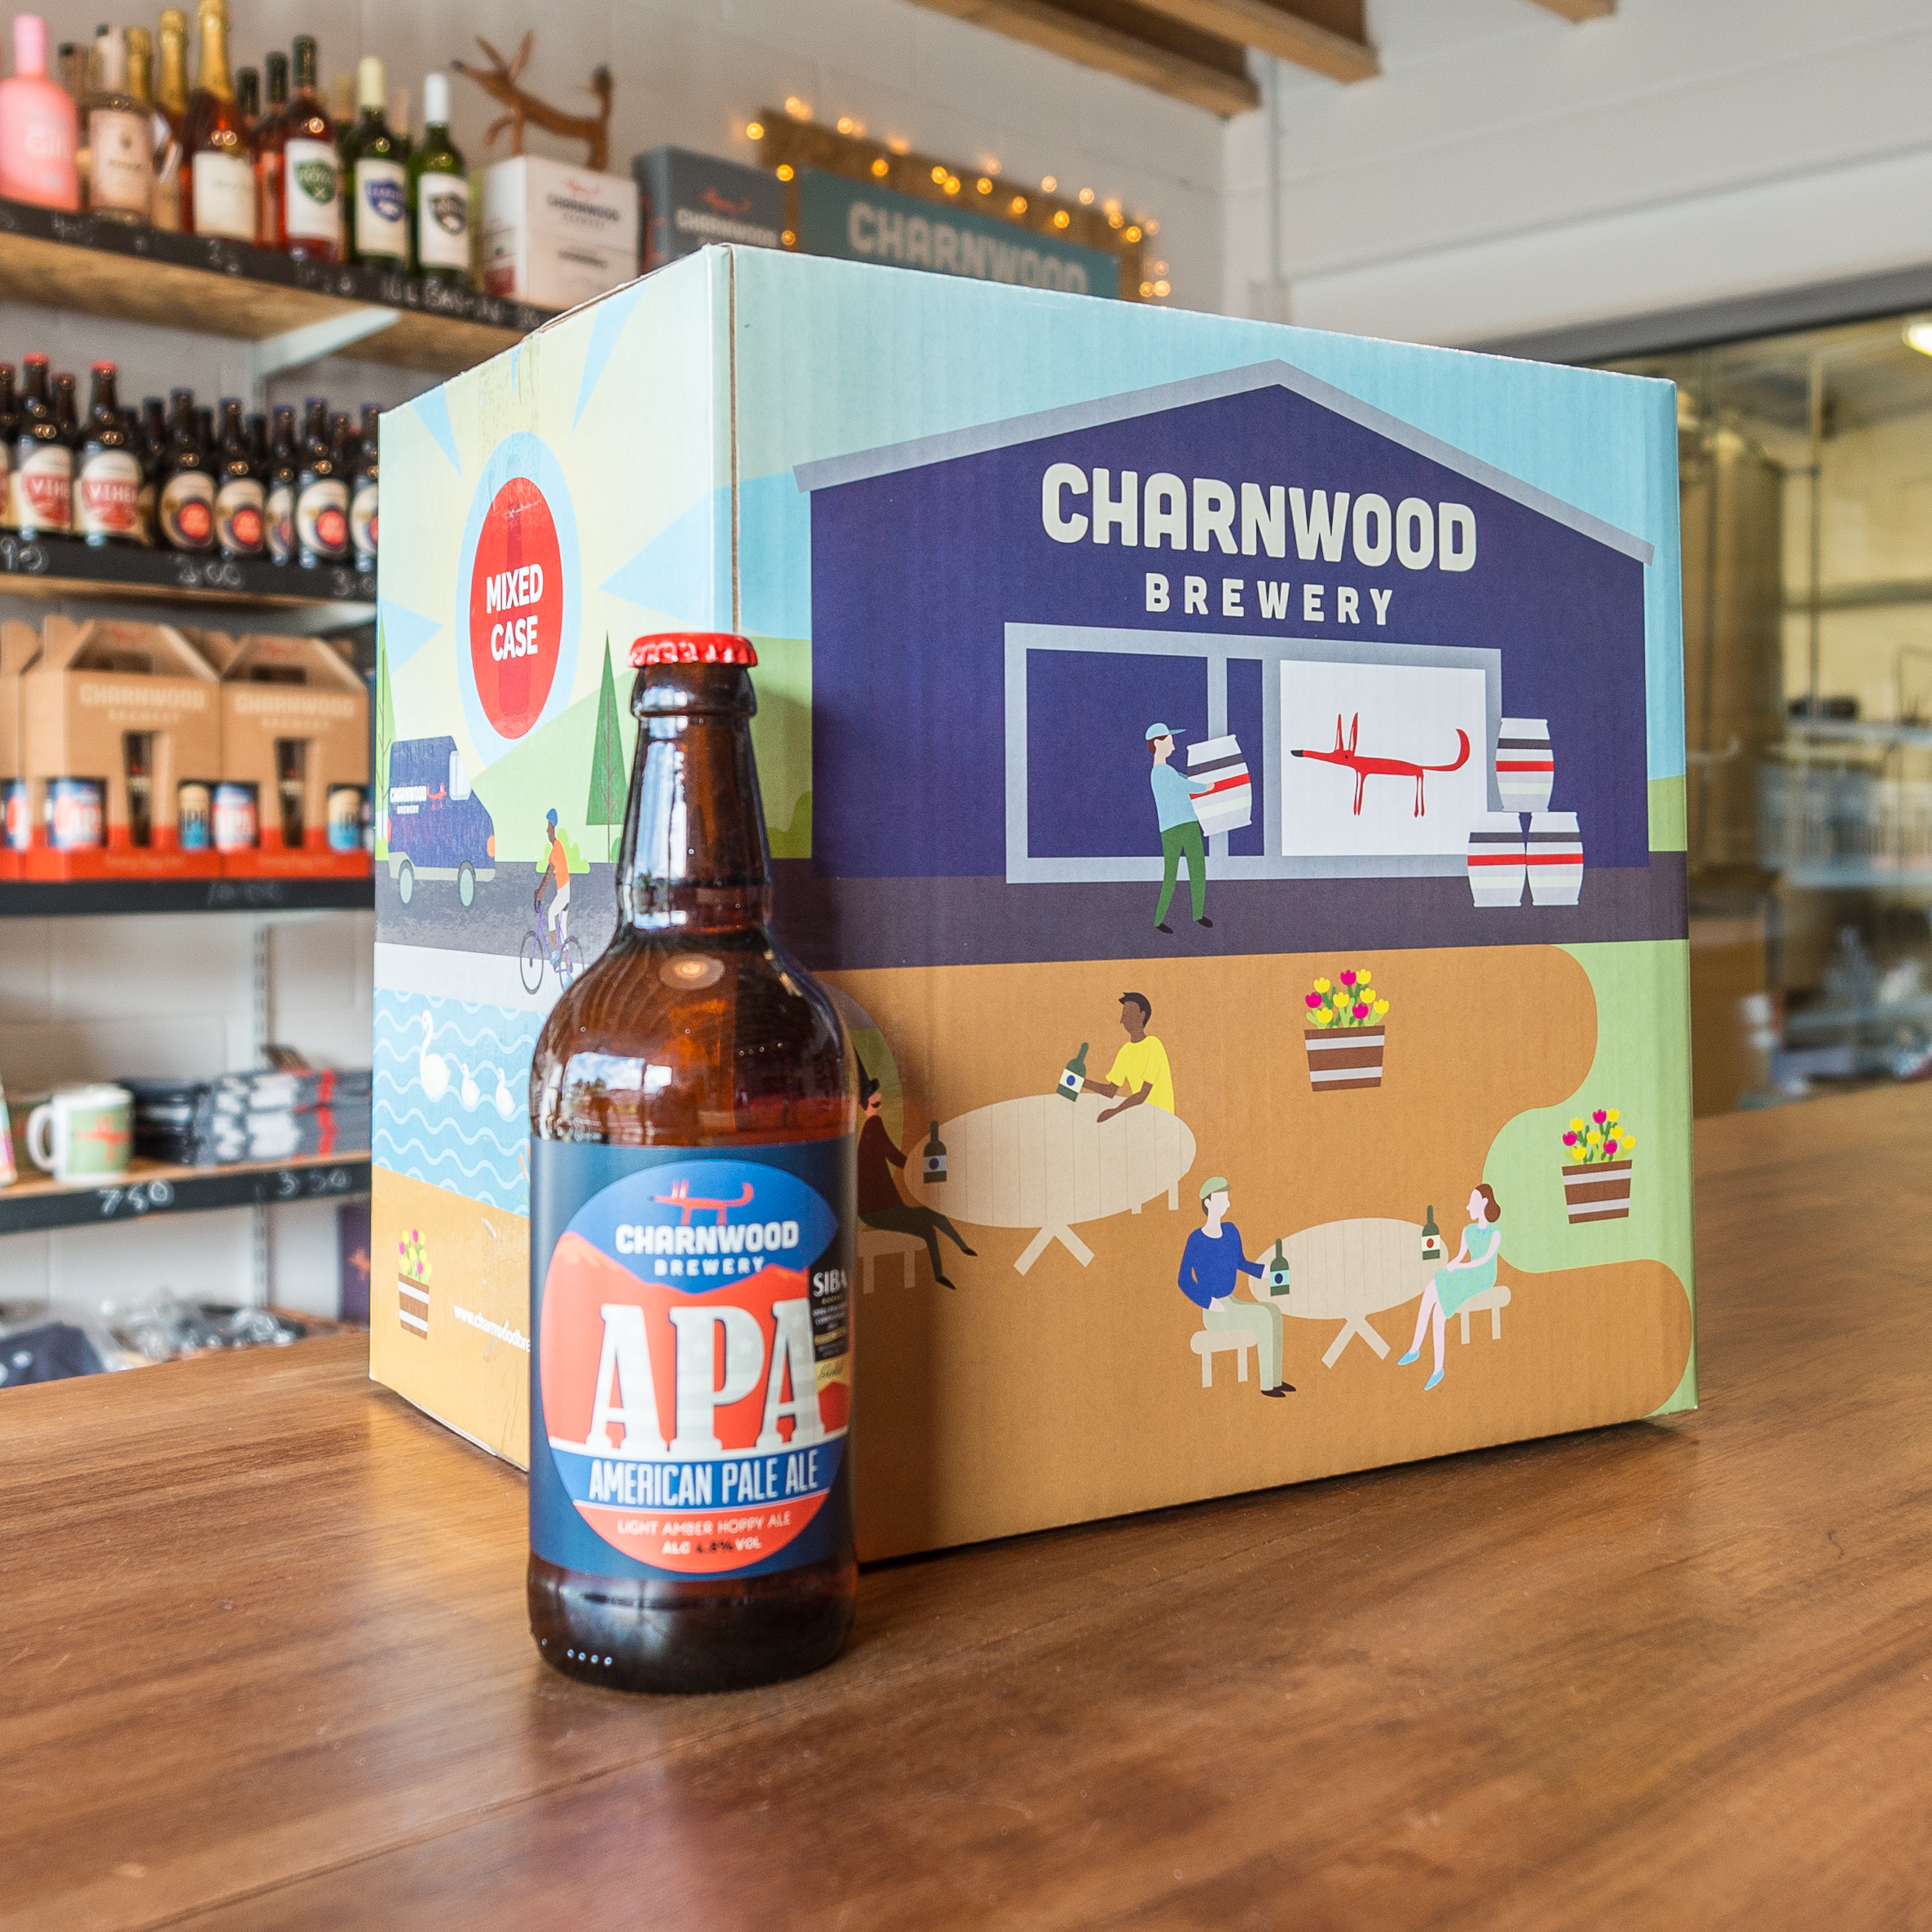 APA case from Charnwood Brewery